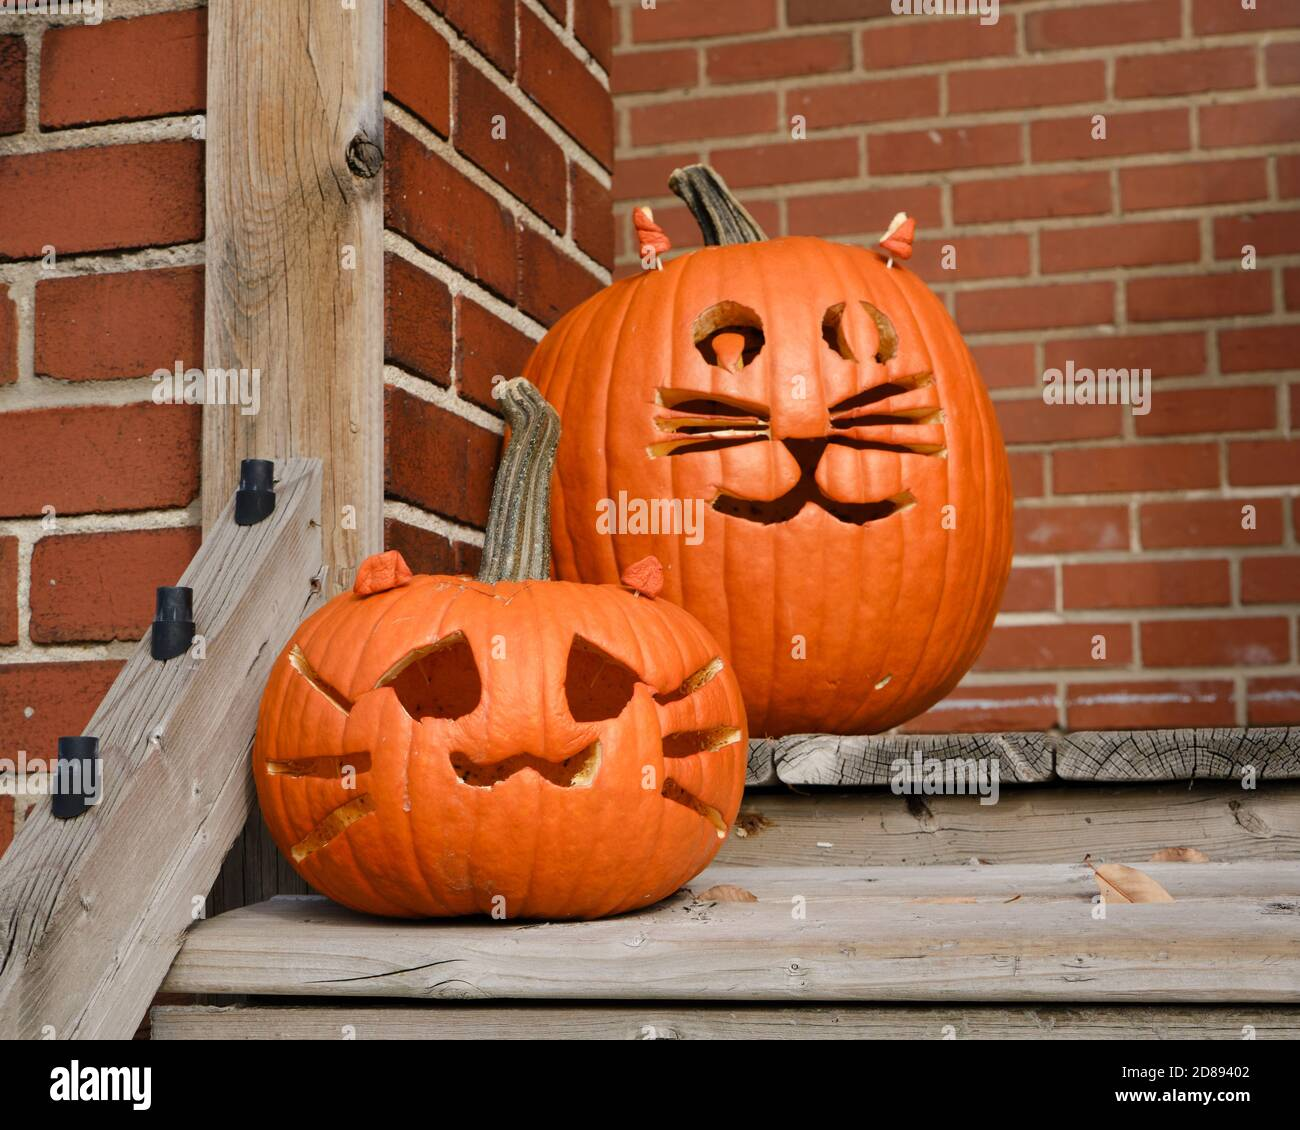 halloween-pumpkins-carved-with-a-cat-face-on-front-porcg-against-vricks-2D89402.jpg